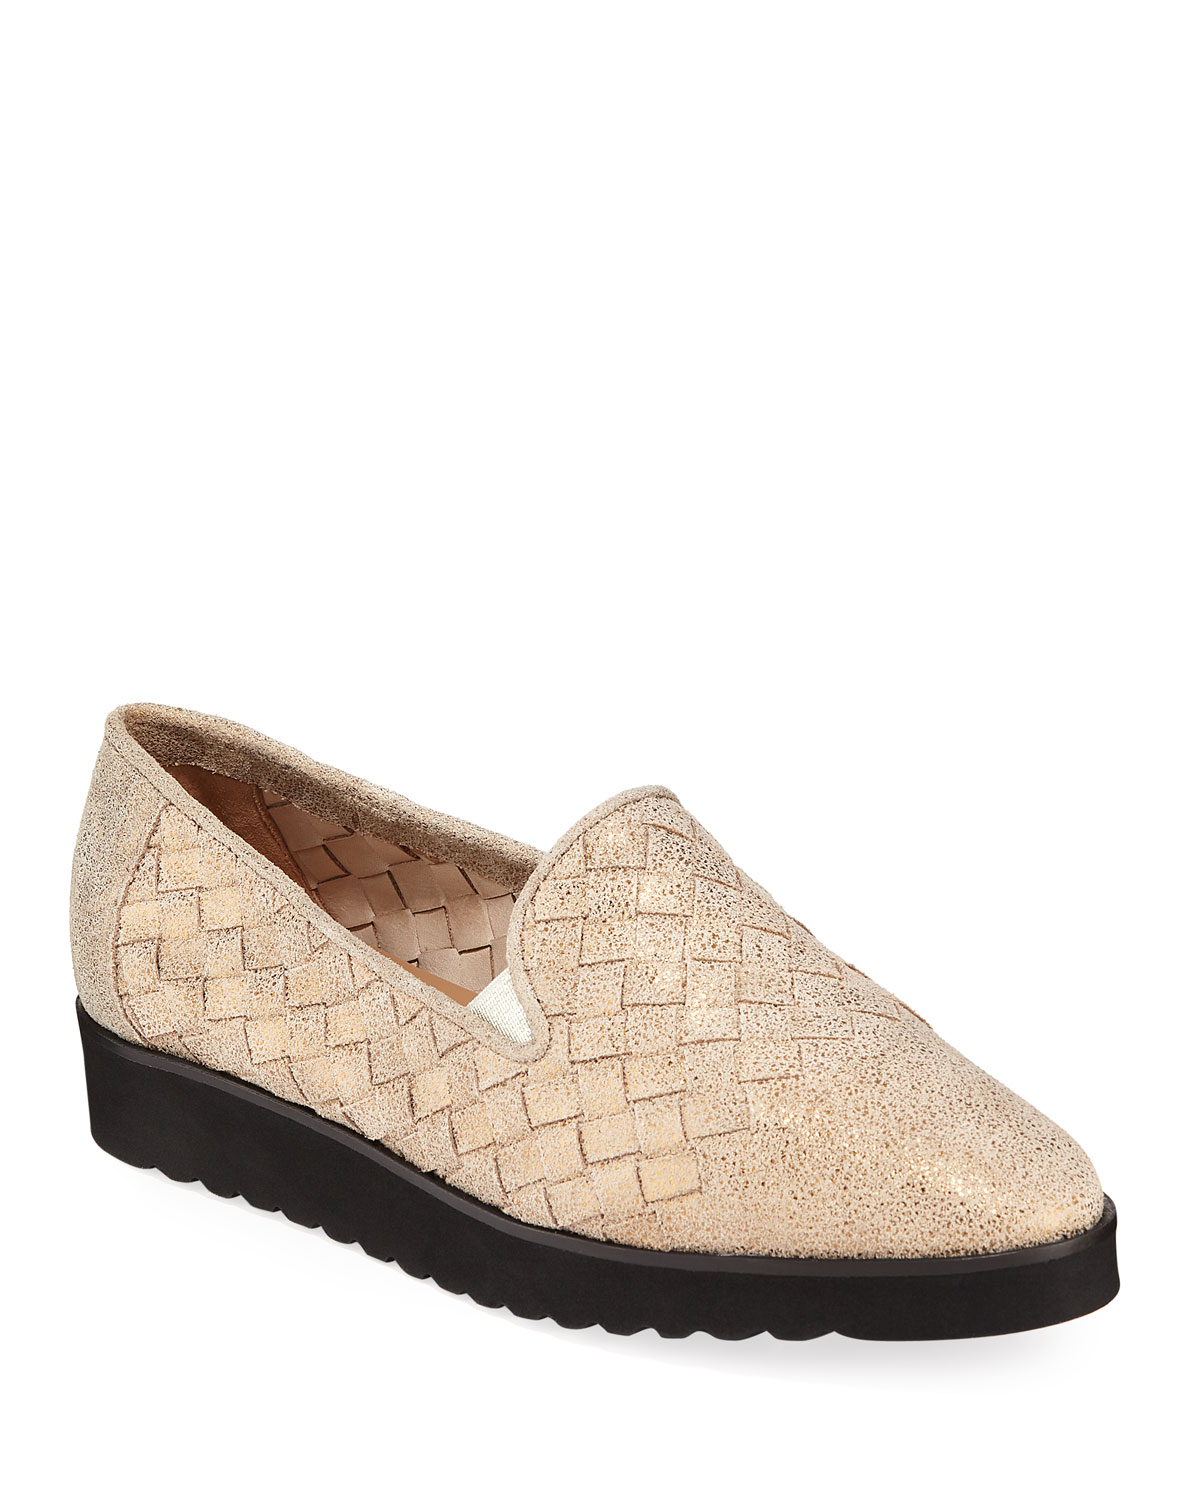 Naia Iconic Woven Leather Loafers, Pewter